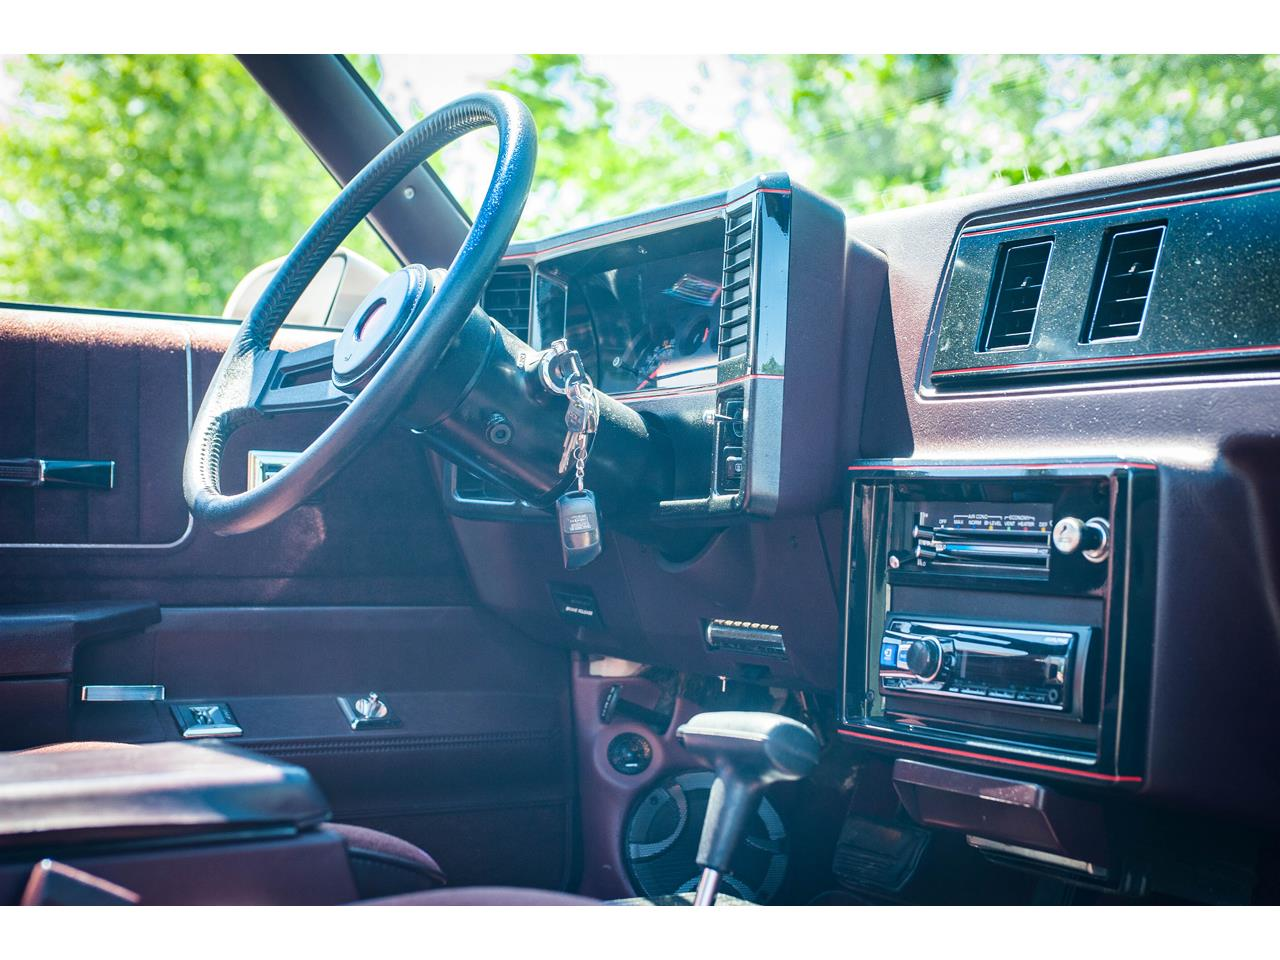 Large Picture of '88 Chevrolet Monte Carlo located in Illinois Offered by Gateway Classic Cars - St. Louis - QENP